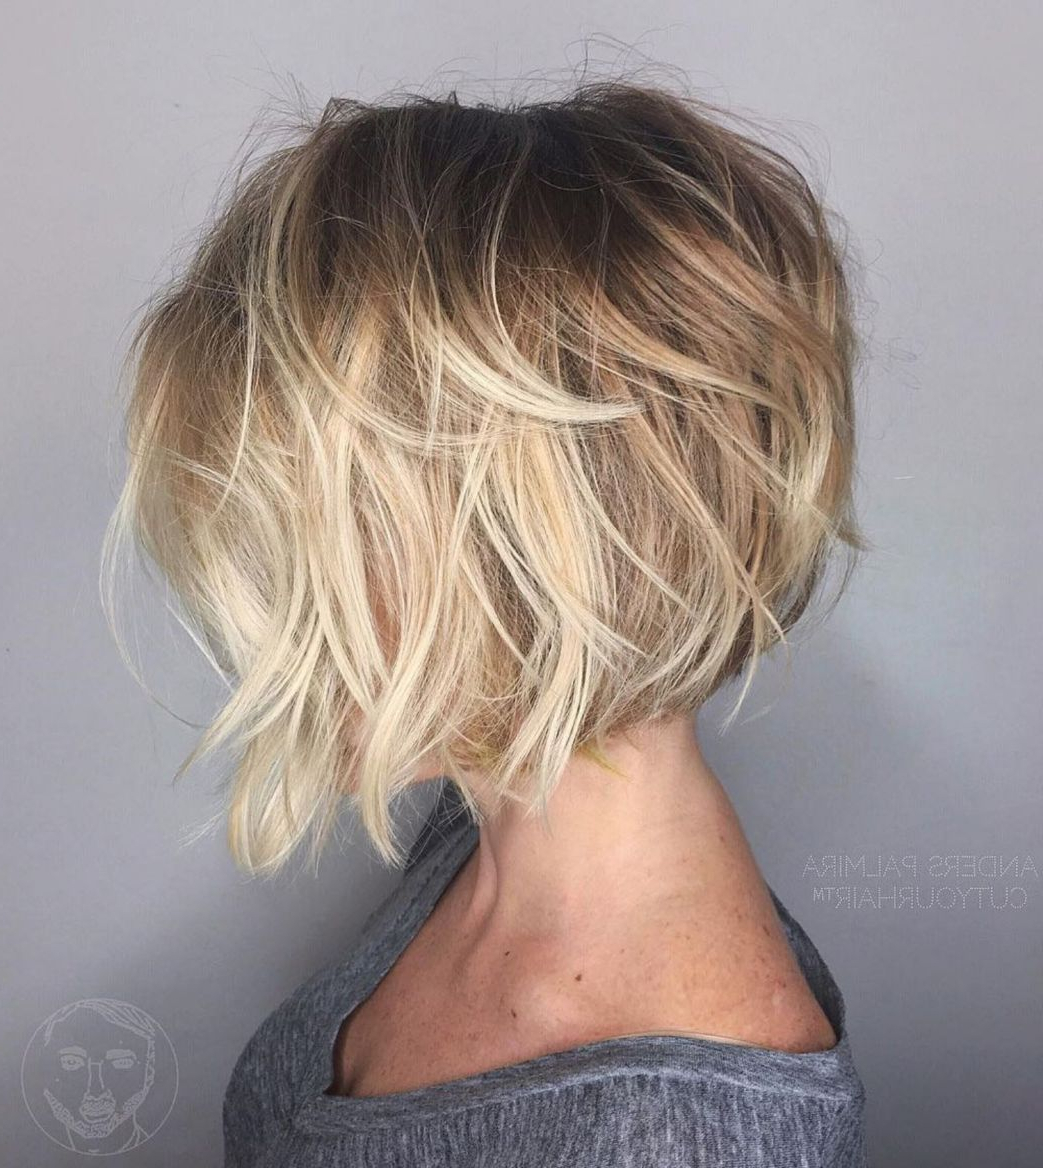 60 Best Short Bob Haircuts And Hairstyles For Women In 2018 | Hair For Choppy Wispy Blonde Balayage Bob Hairstyles (View 5 of 20)